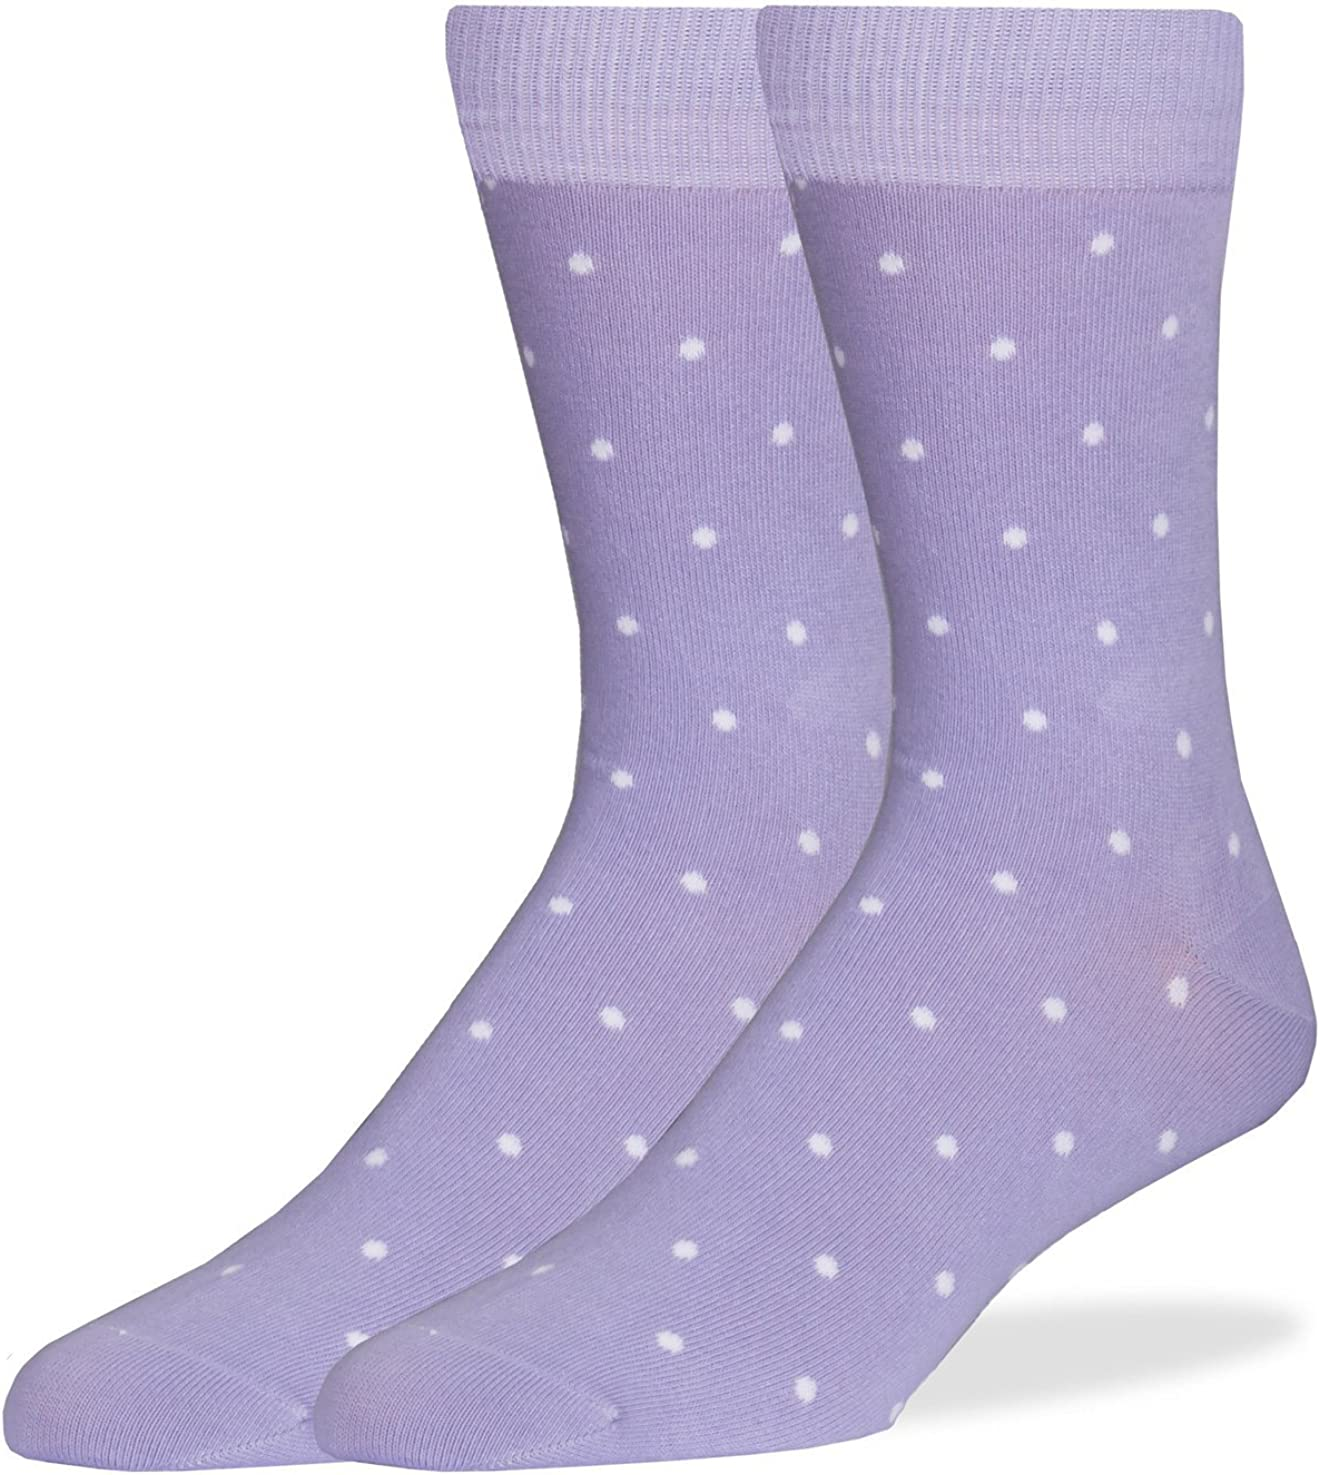 SPREZZA Men's Polka Dot Dress Socks, Cotton, Size 9-13, Assorted Colors